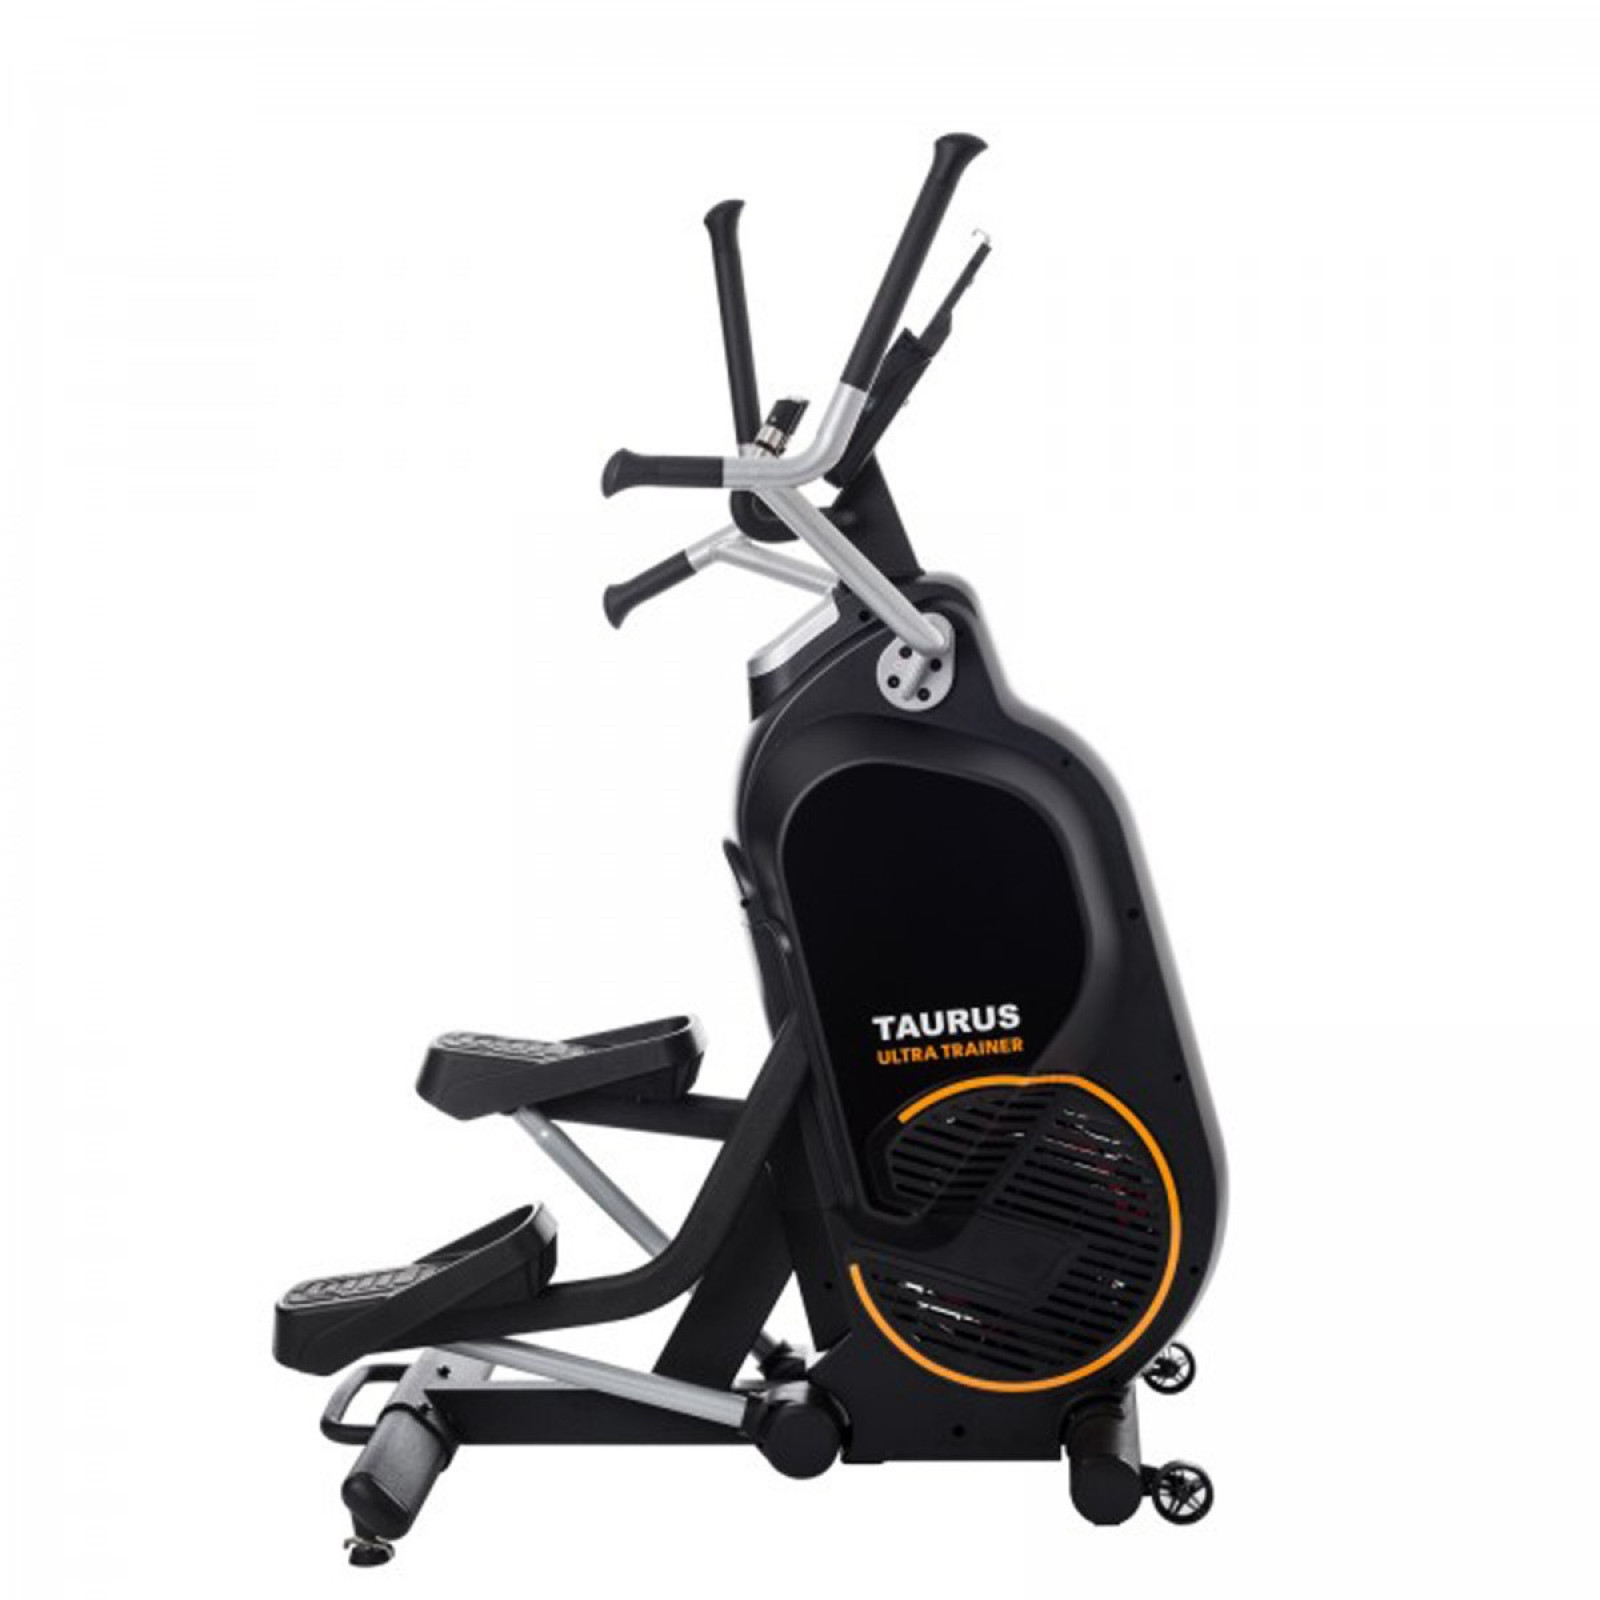 Taurus Ultra Trainer - Shop Online - Powerhouse Fitness